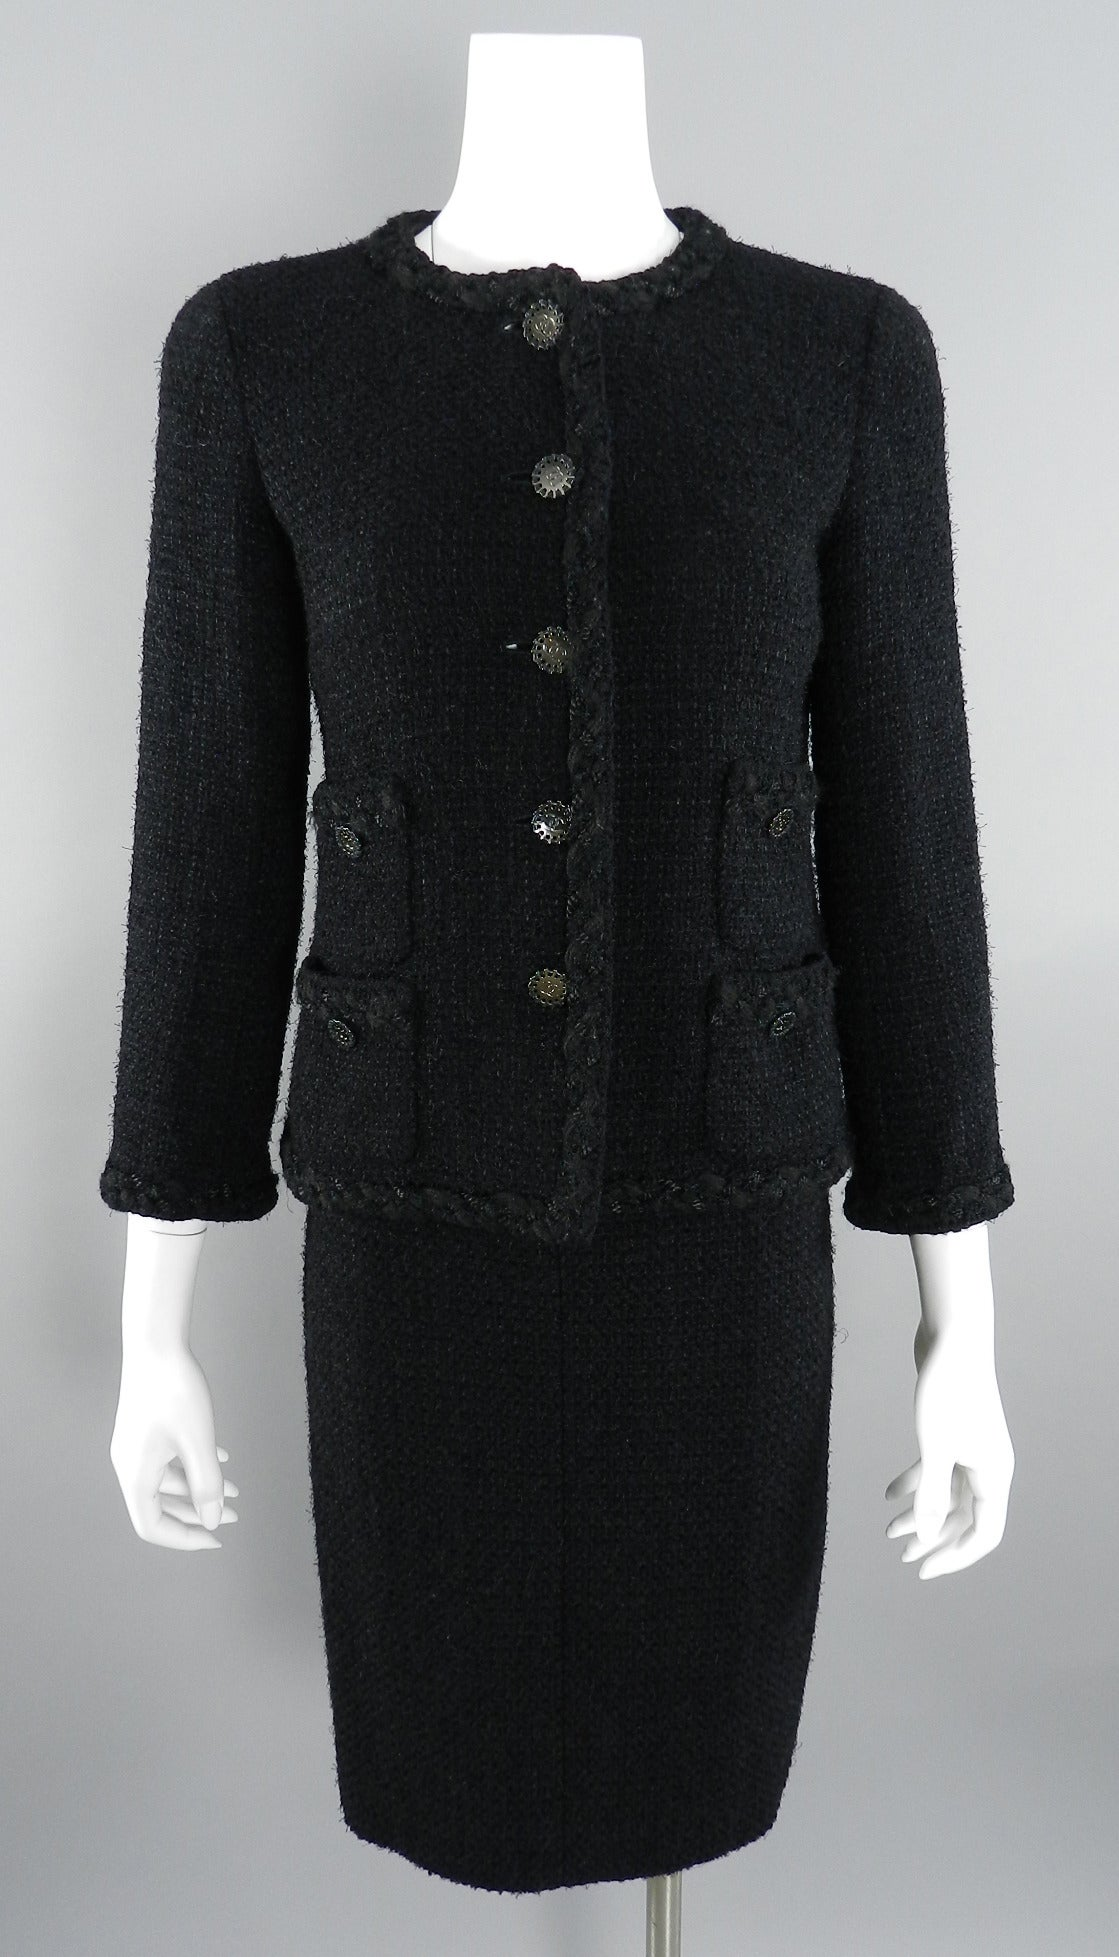 40ca68934b0 Chanel Black Tweed Wool Classic Skirt Suit at 1stdibs